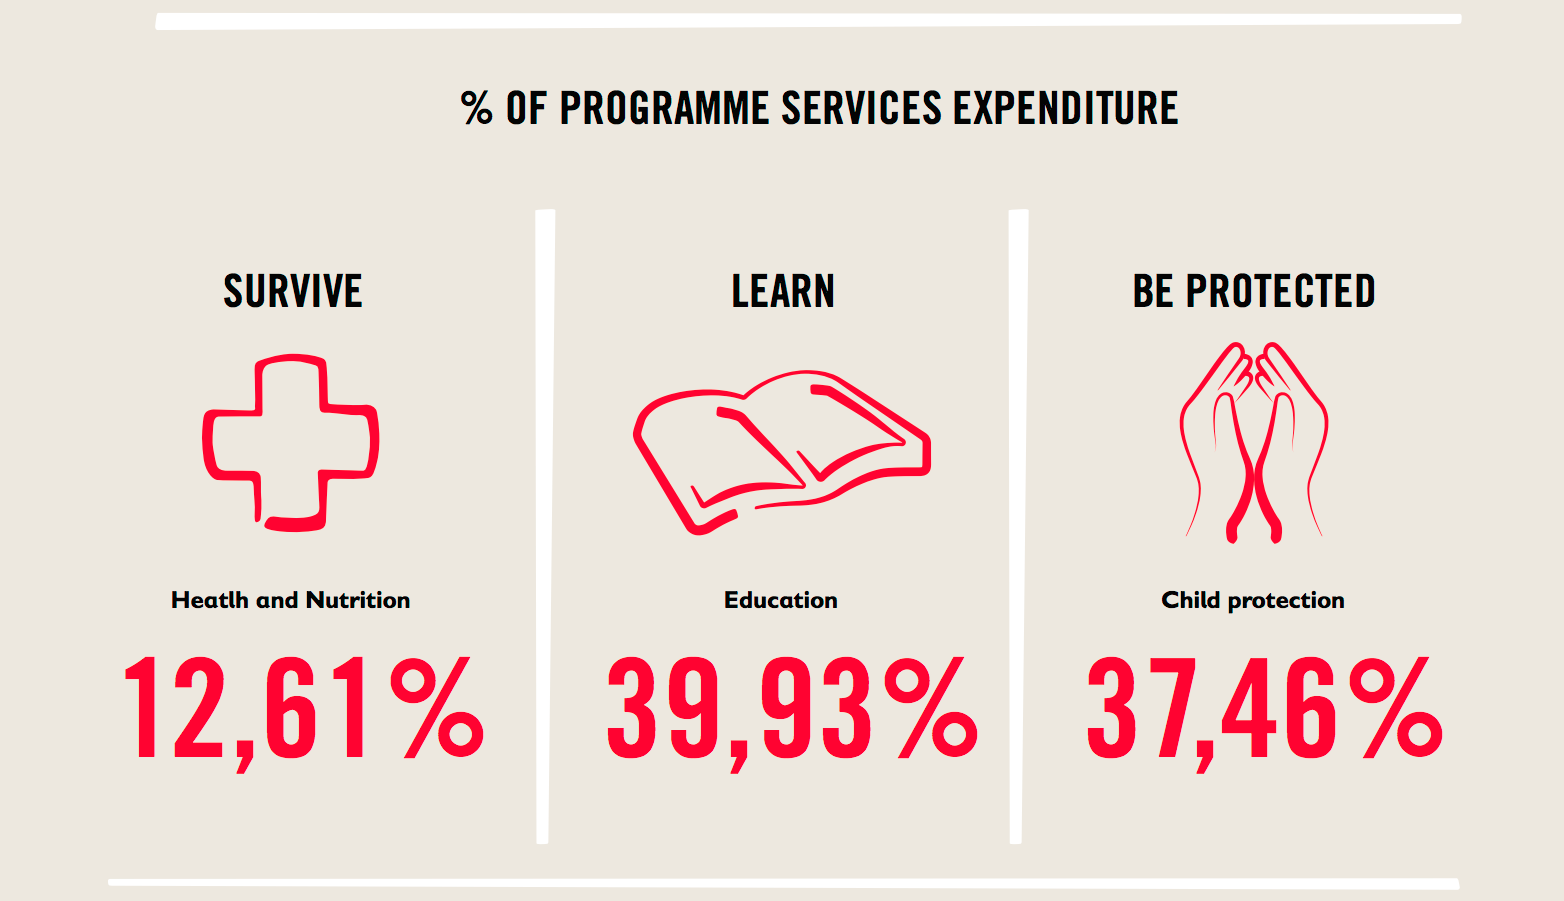 Expenditures-Programme-Services.png